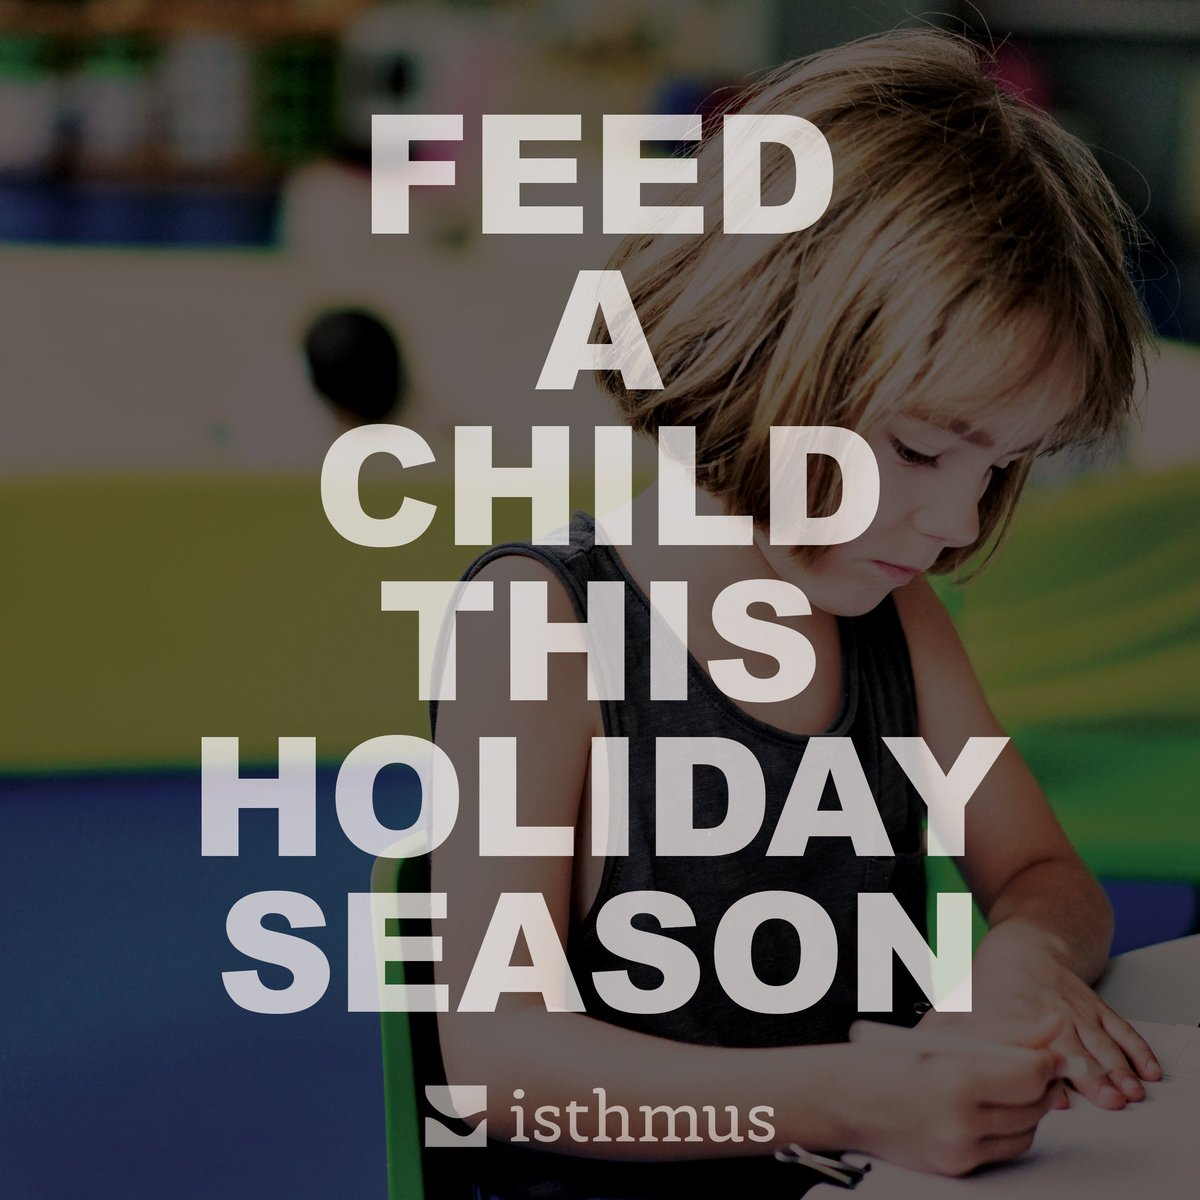 No kid should go hungry, especially during the holidays. Check out Isthmus Canada and the great work they're doing https://t.co/QGFkO3Xj9a Every donation makes a difference, we would like your support #IsthmusCA https://t.co/MNE6kzUH5x